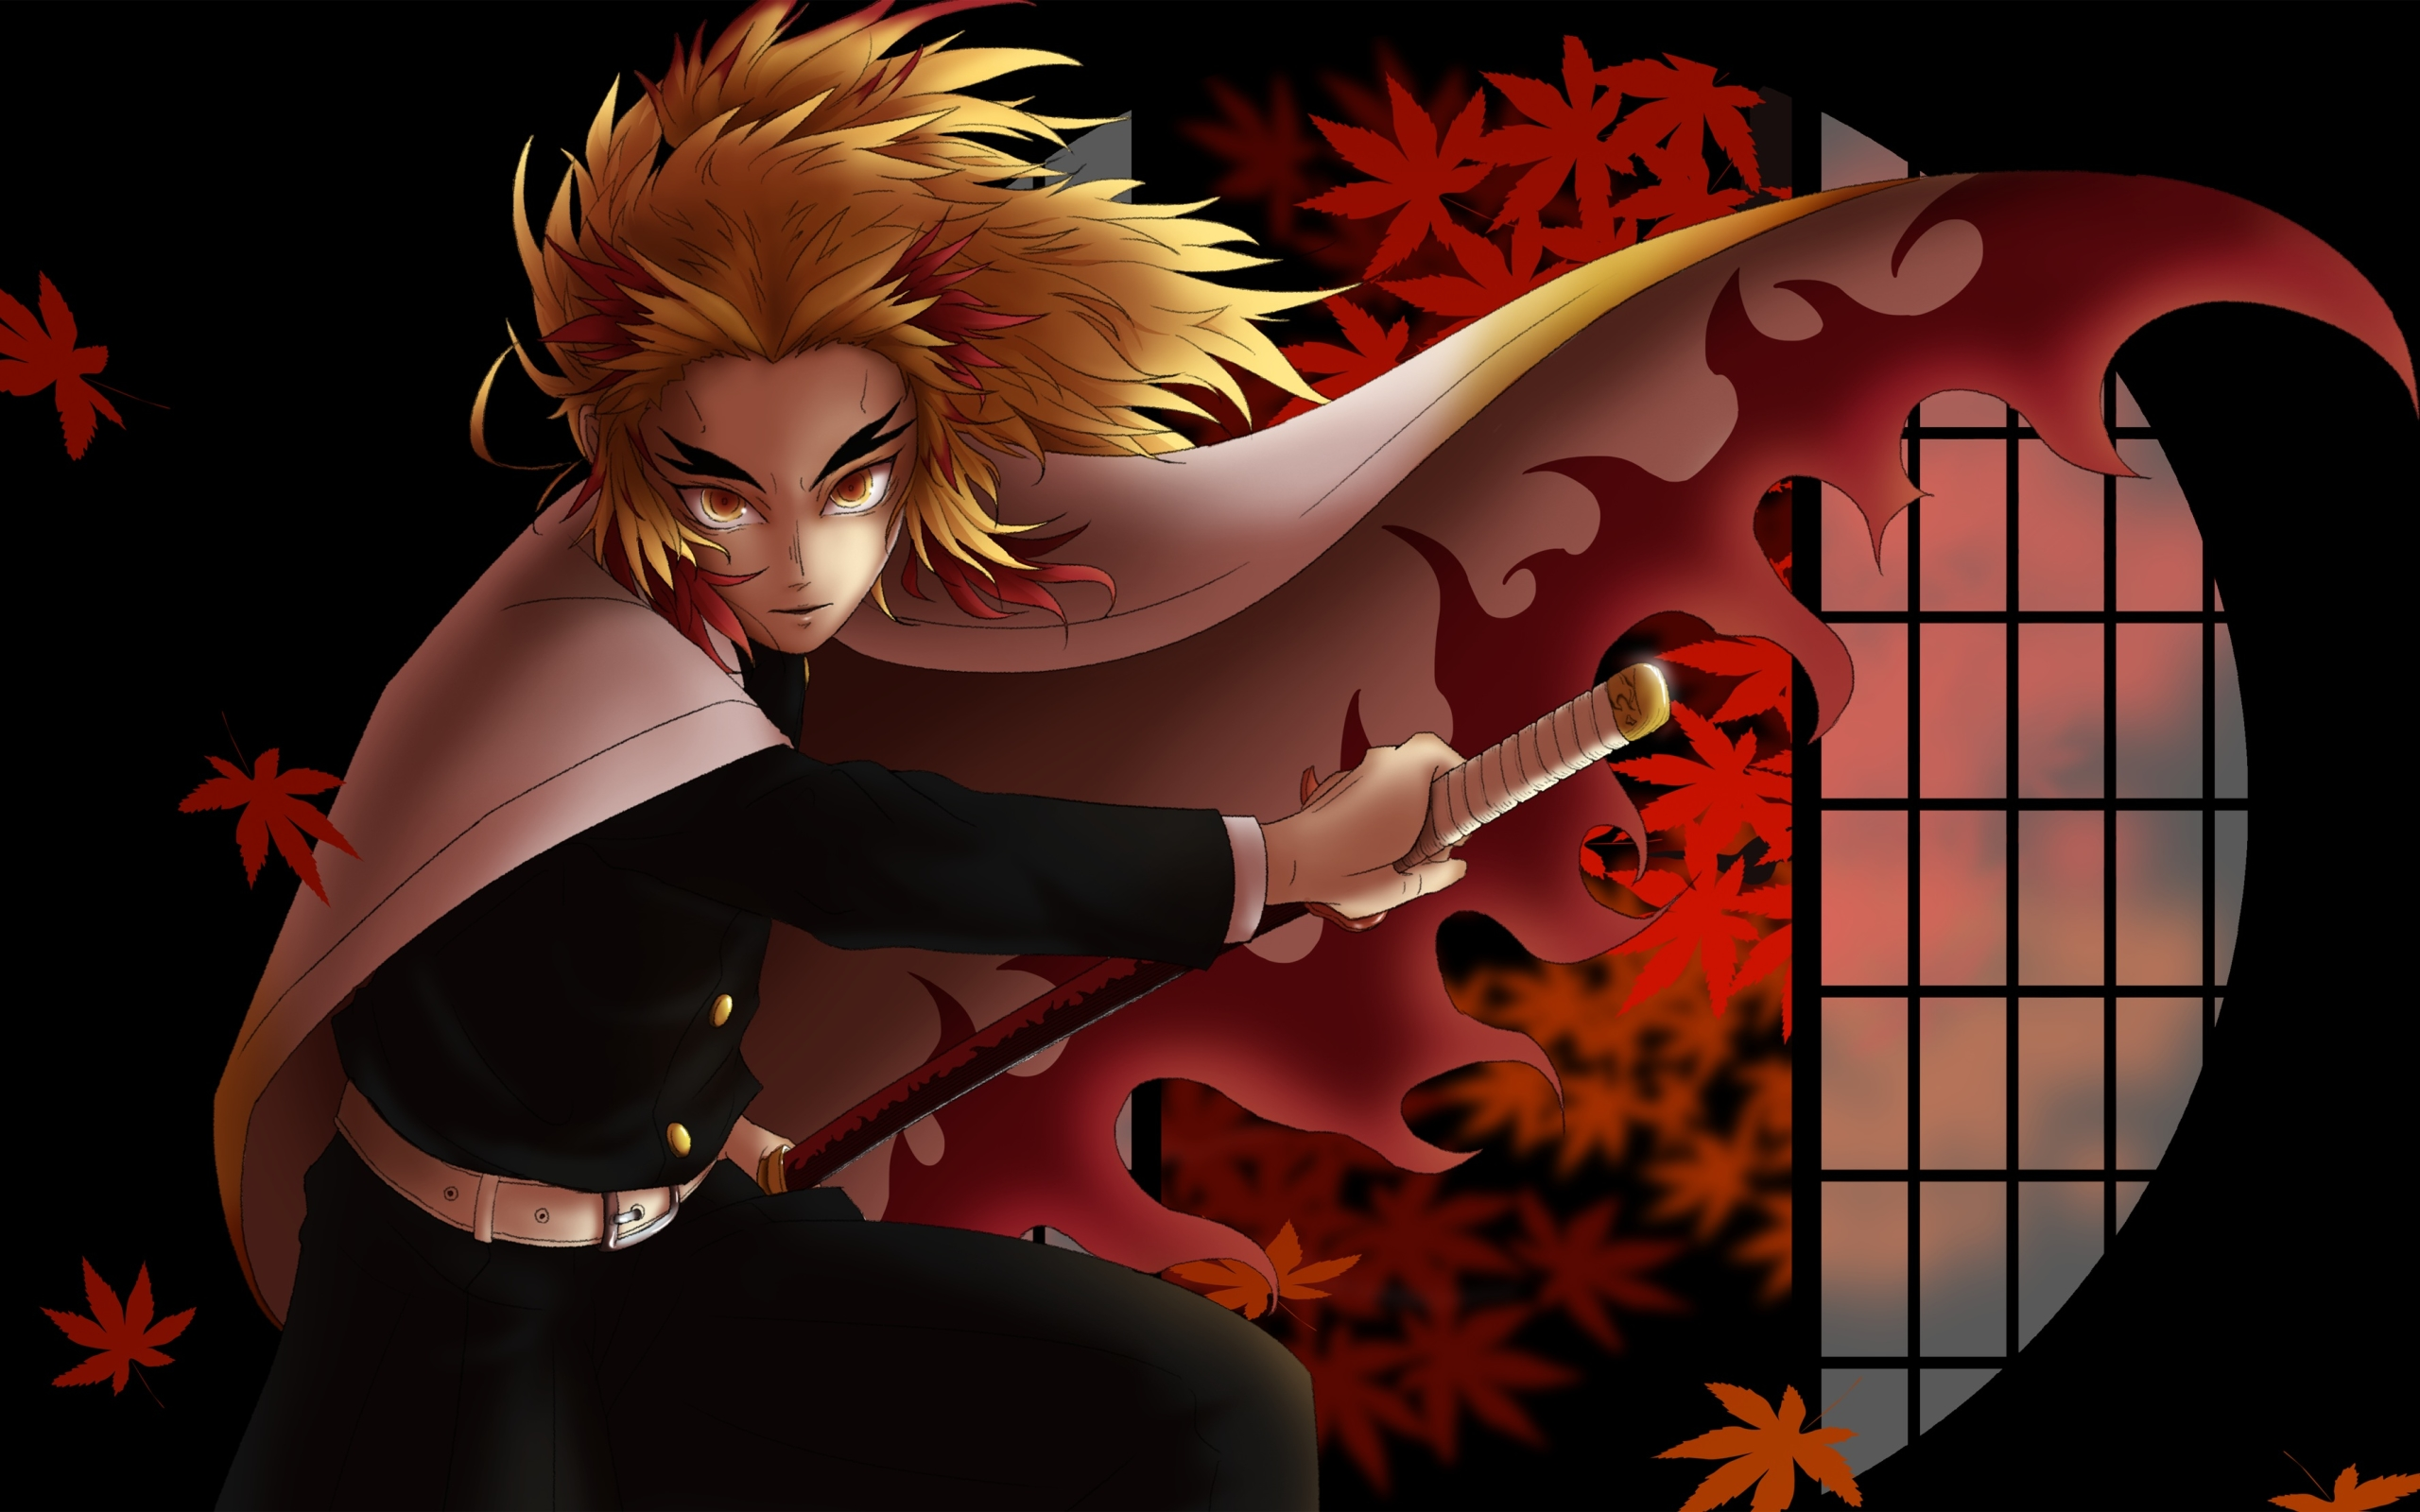 Wallpaper Of Rengoku Kyoujurou Demon Slayer Kimetsu No Yaiba